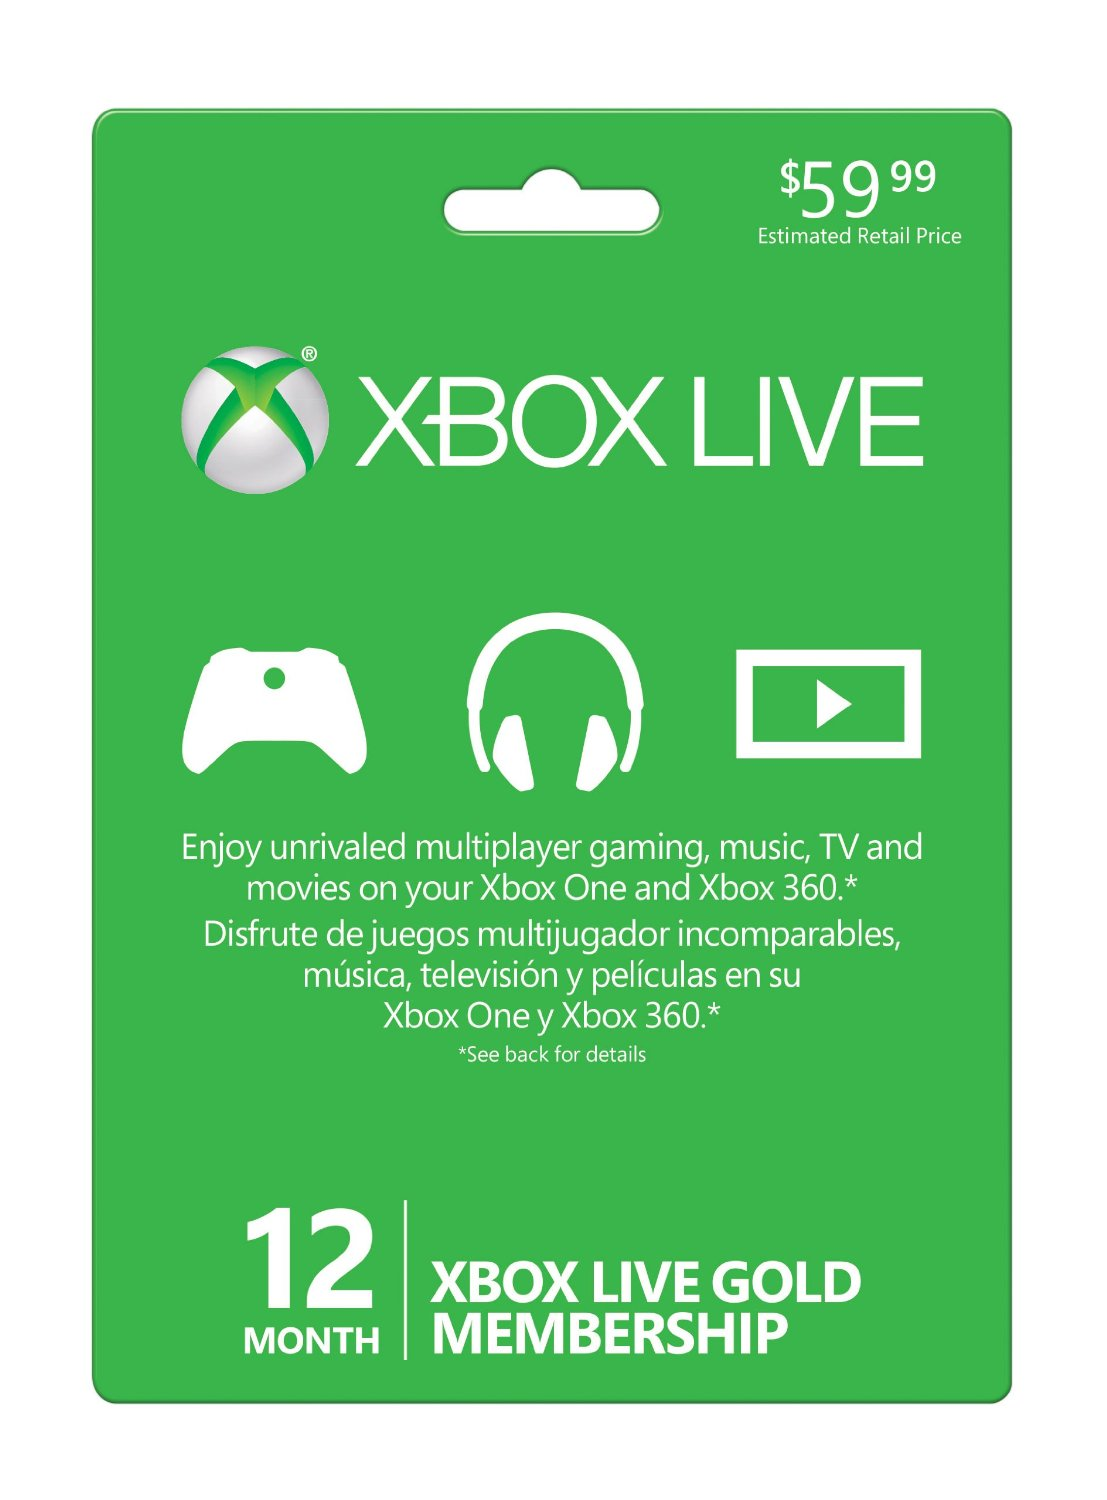 how to upgrade to xbox live gold